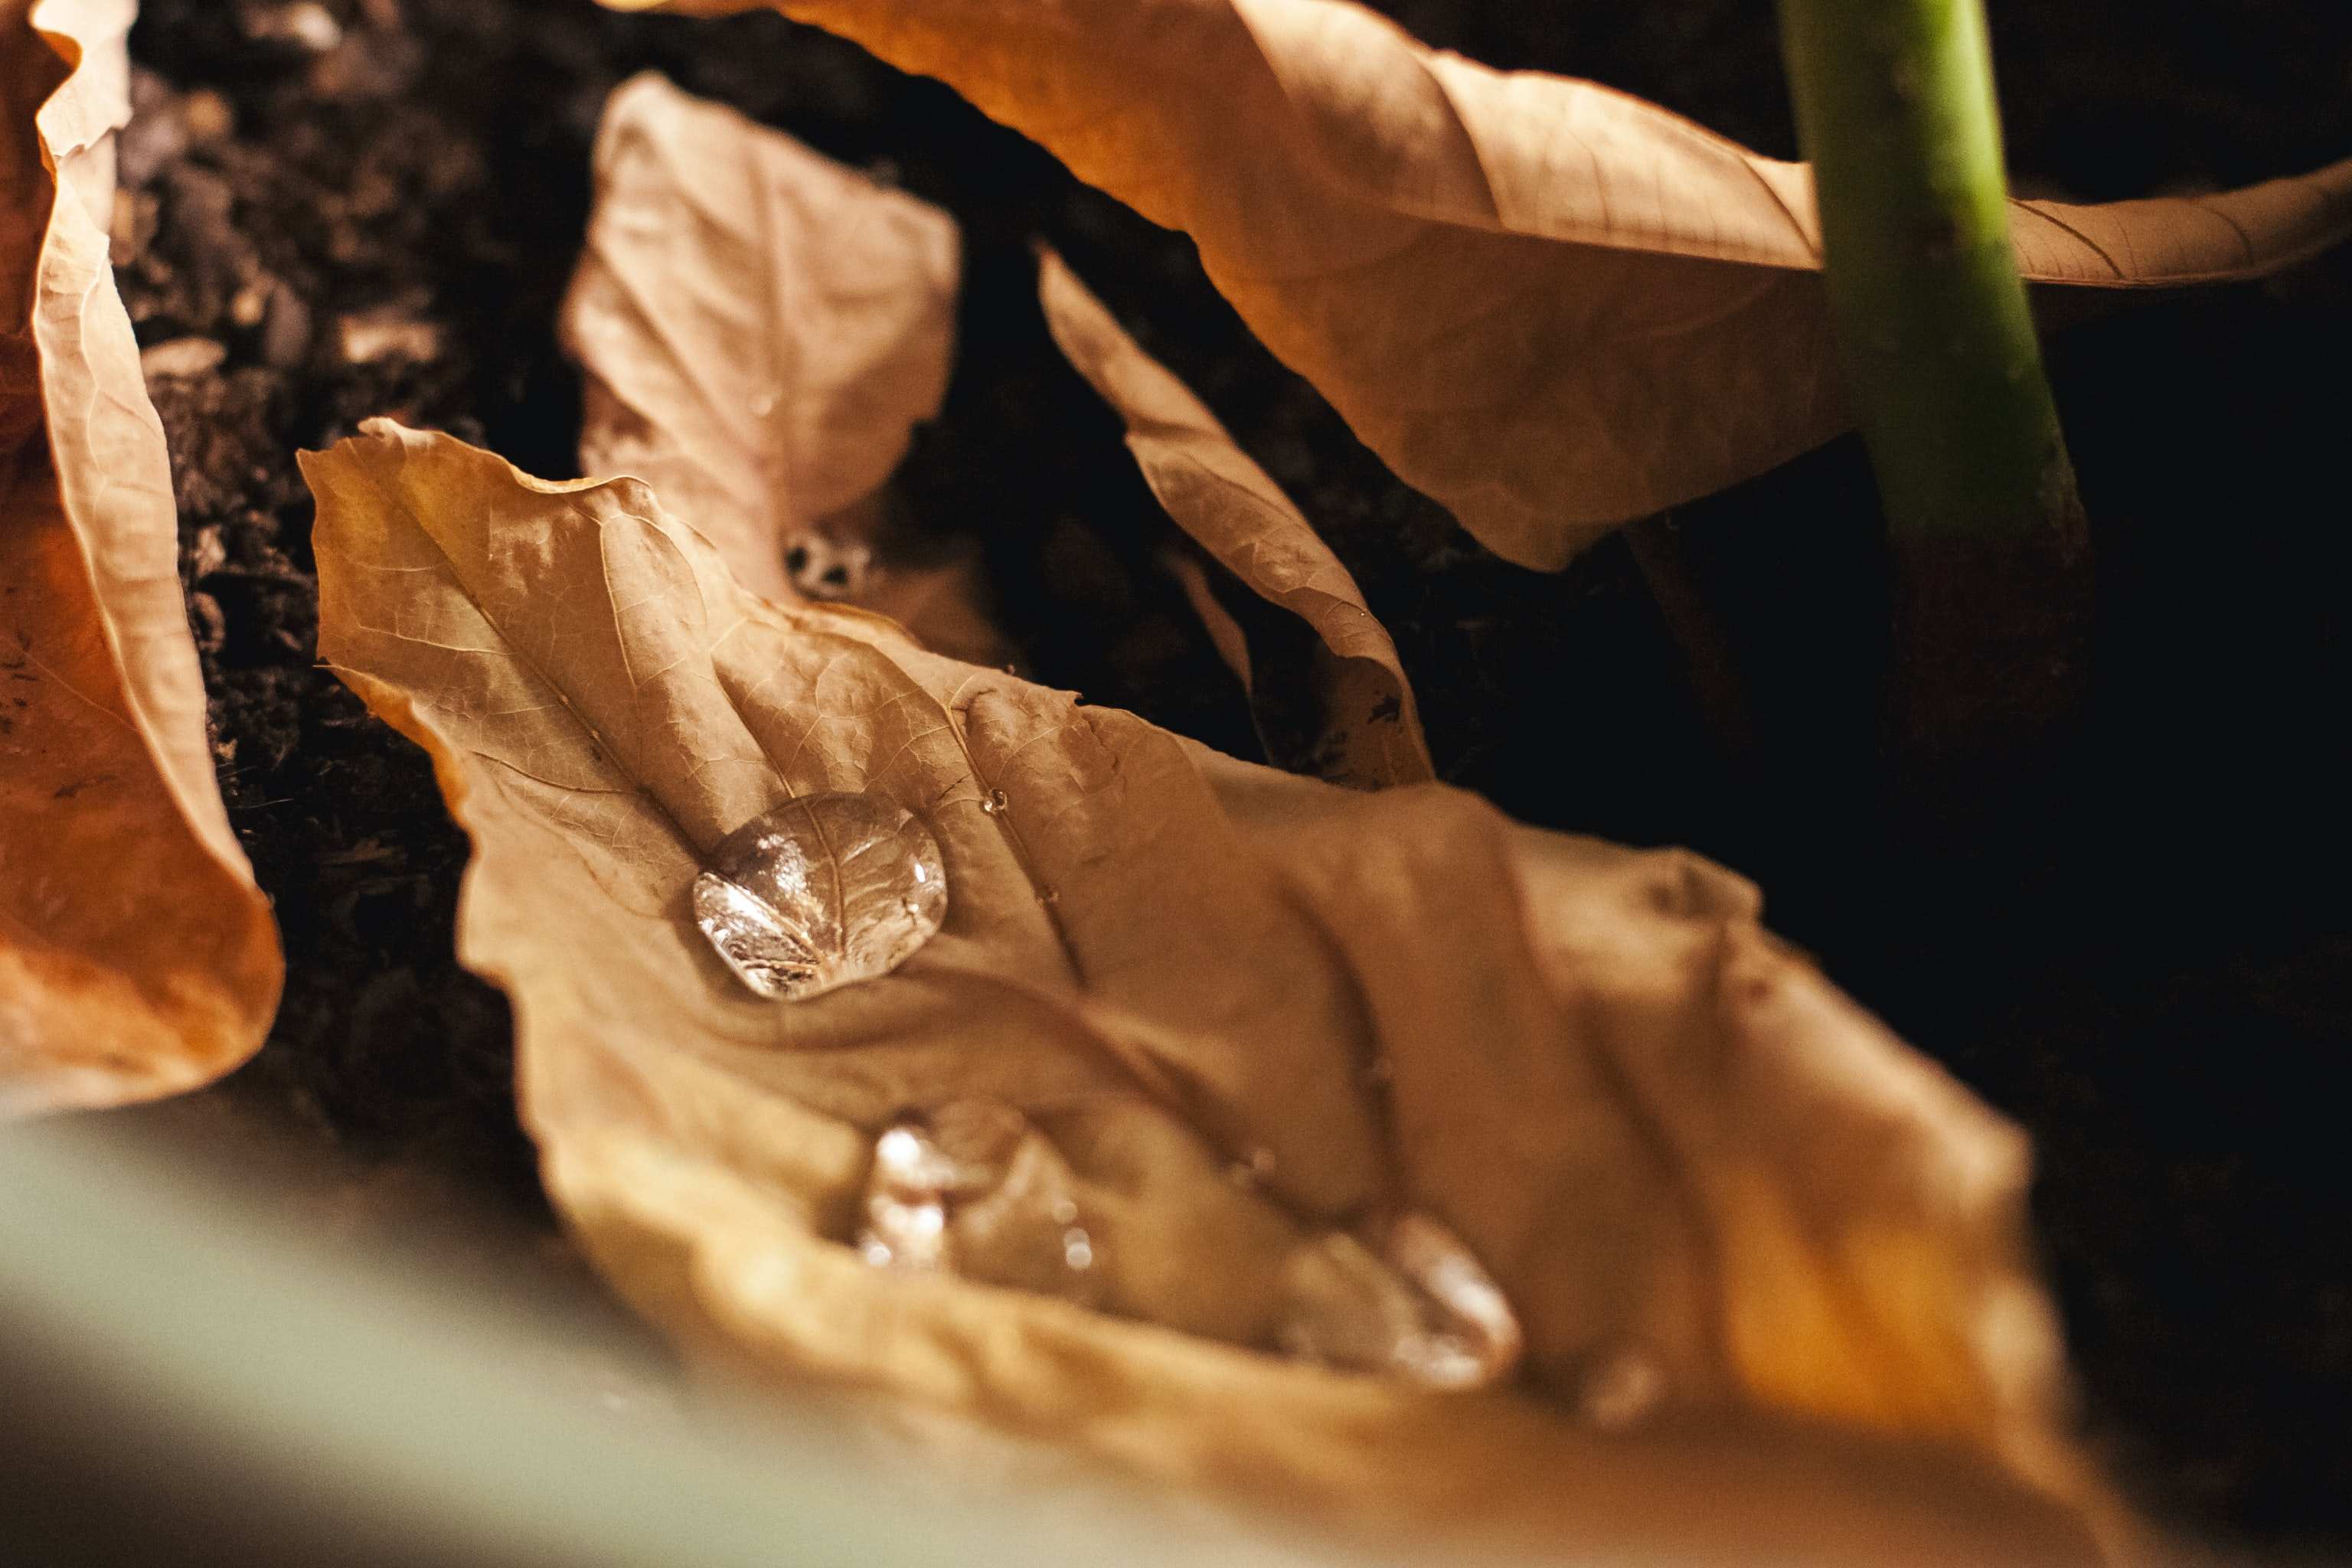 Water drops on an orange autumn leaf besides other leaves and a plant's stem on damp soil